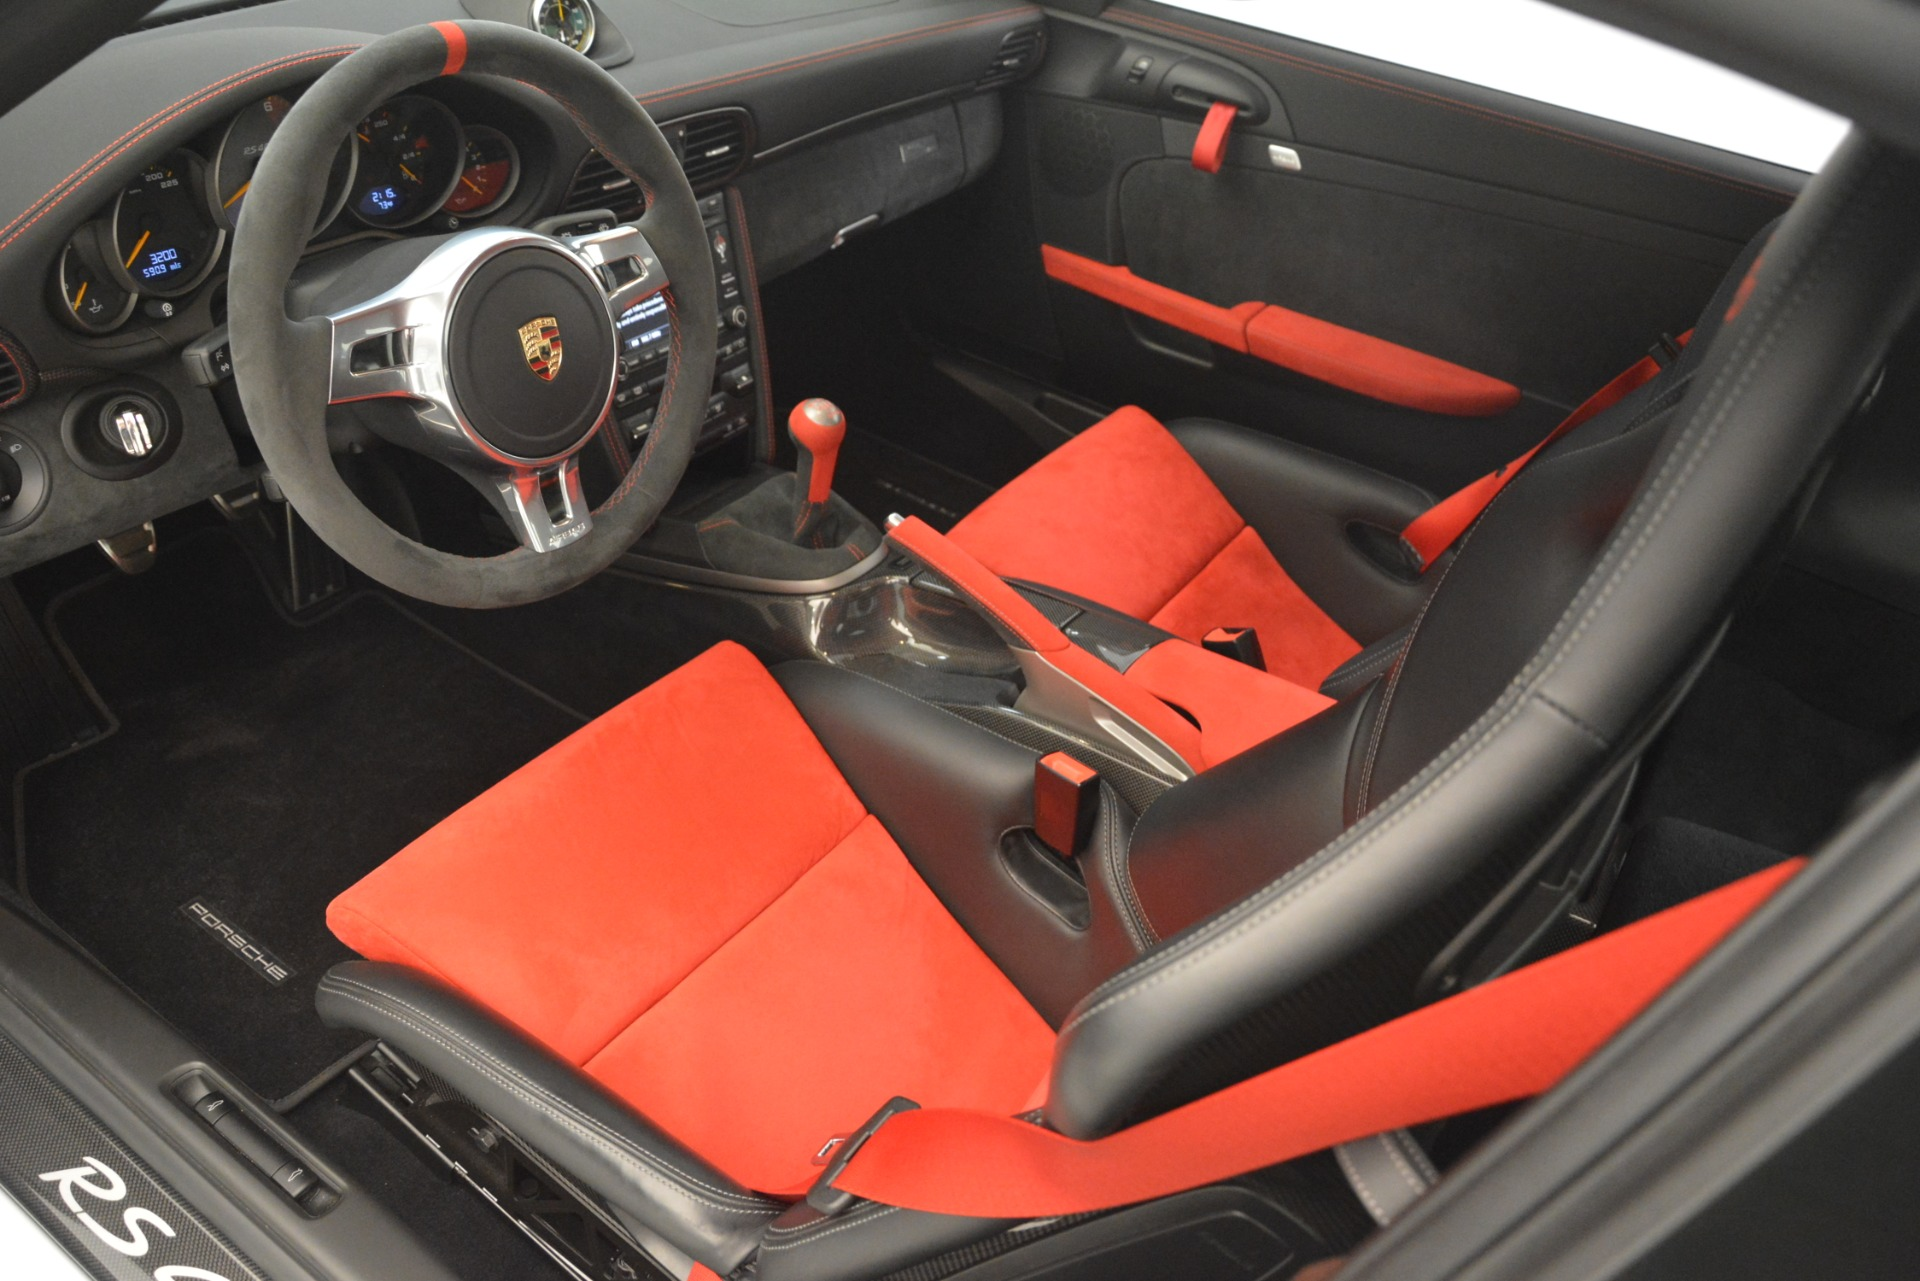 Used 2011 Porsche 911 GT3 RS 4.0 For Sale In Greenwich, CT 3188_p13